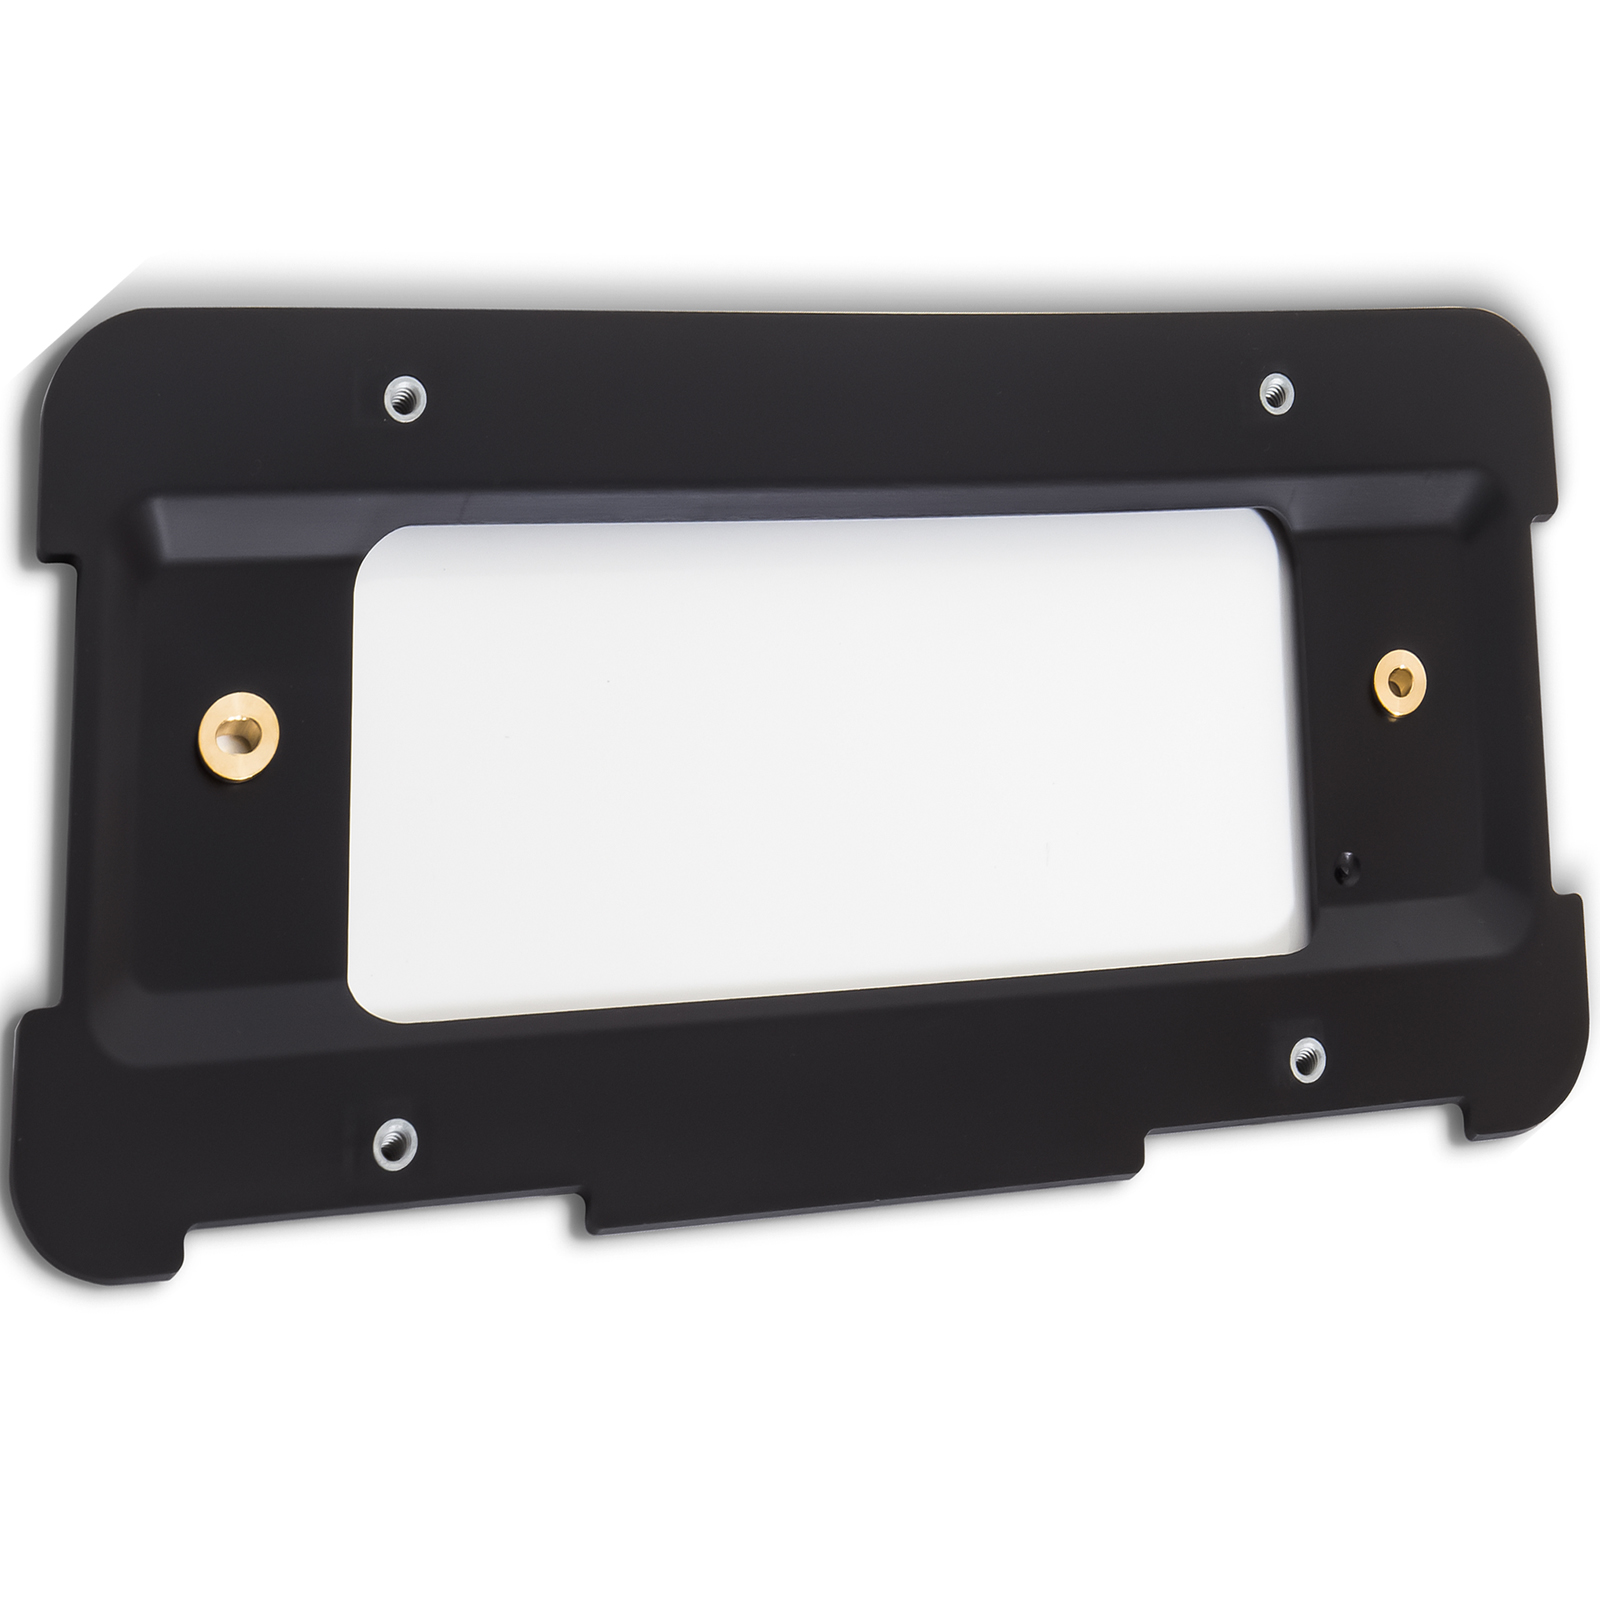 I-Match Auto Parts Front License Plate Bracket Tag Holder Replacement For 2014-2016 Toyota Corolla Sedan TO1068123 5211402090 Black Textured